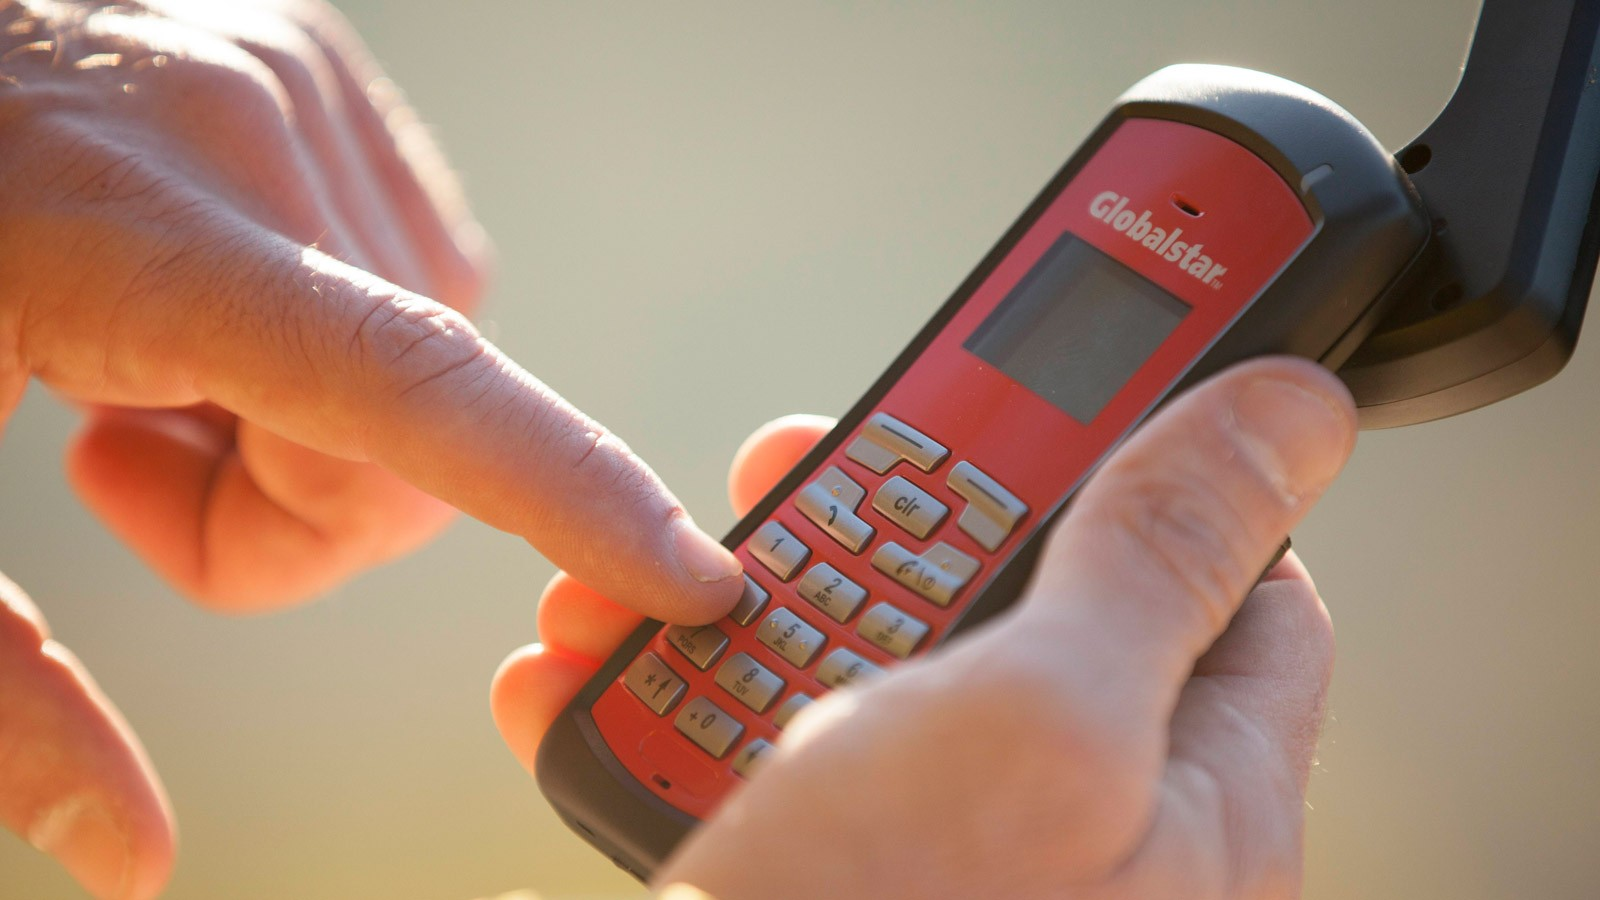 Globalstar's satellite phone is to be used on the Tour